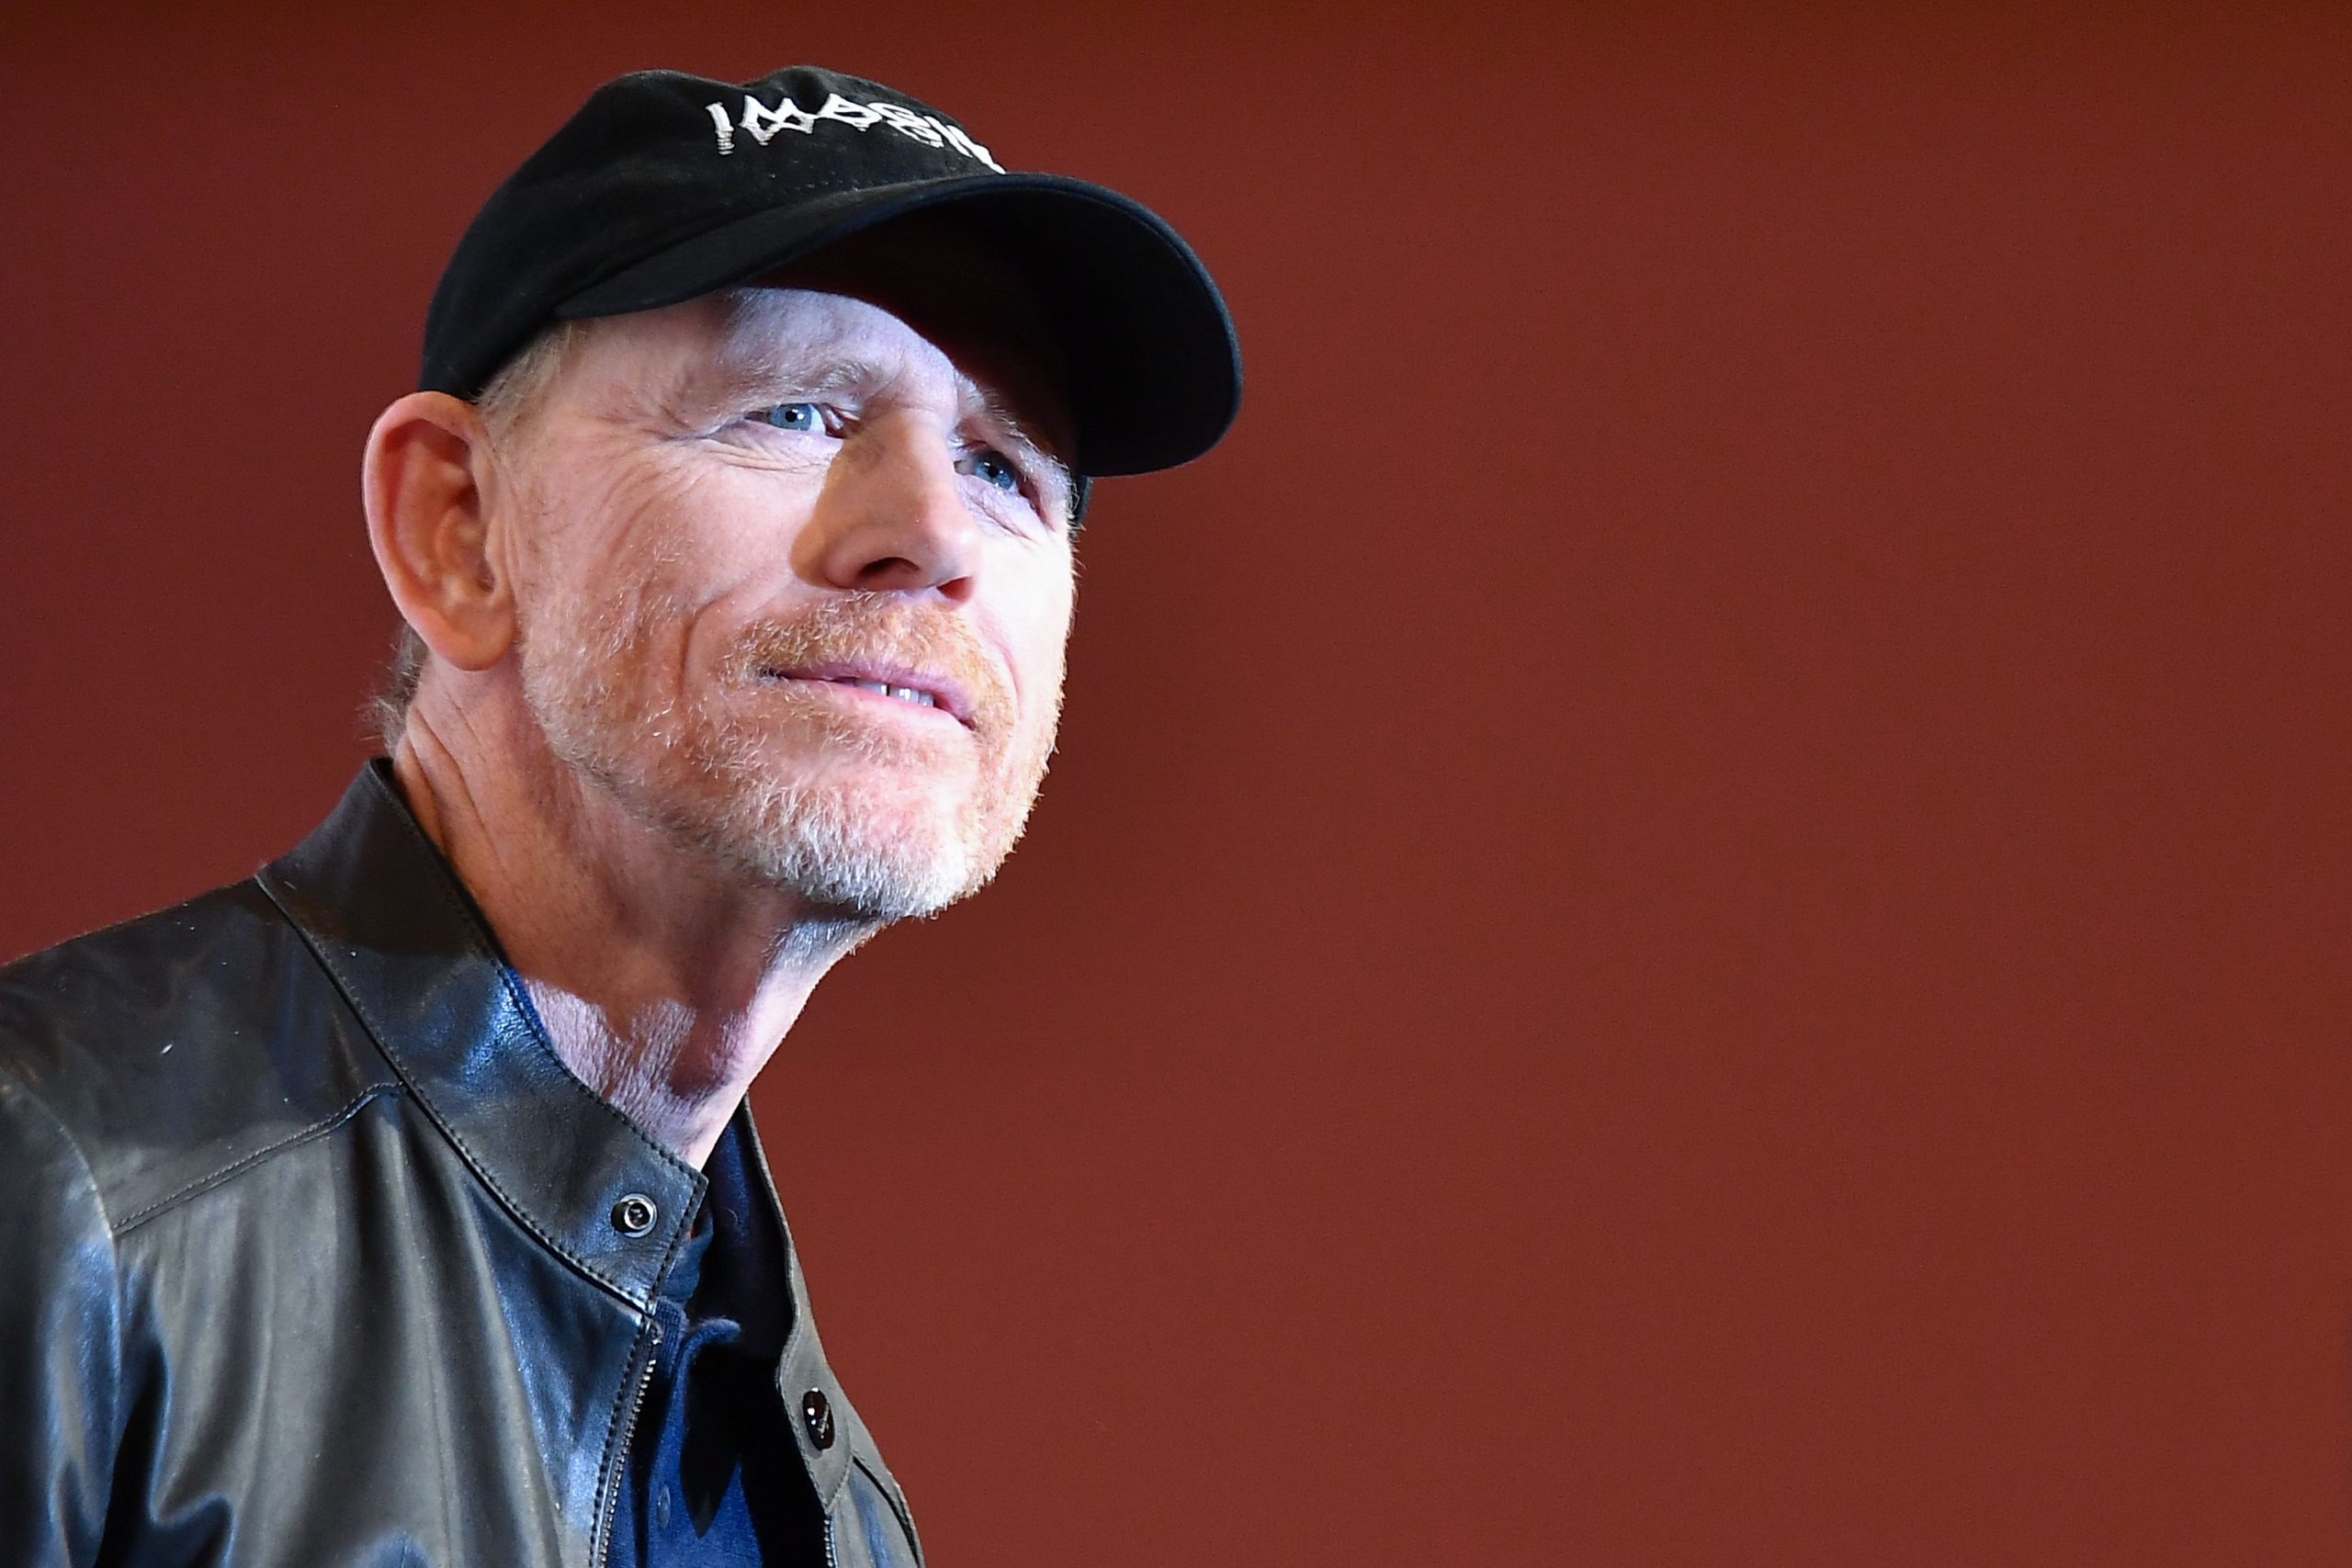 Director, producer, actor, and author Ron Howard